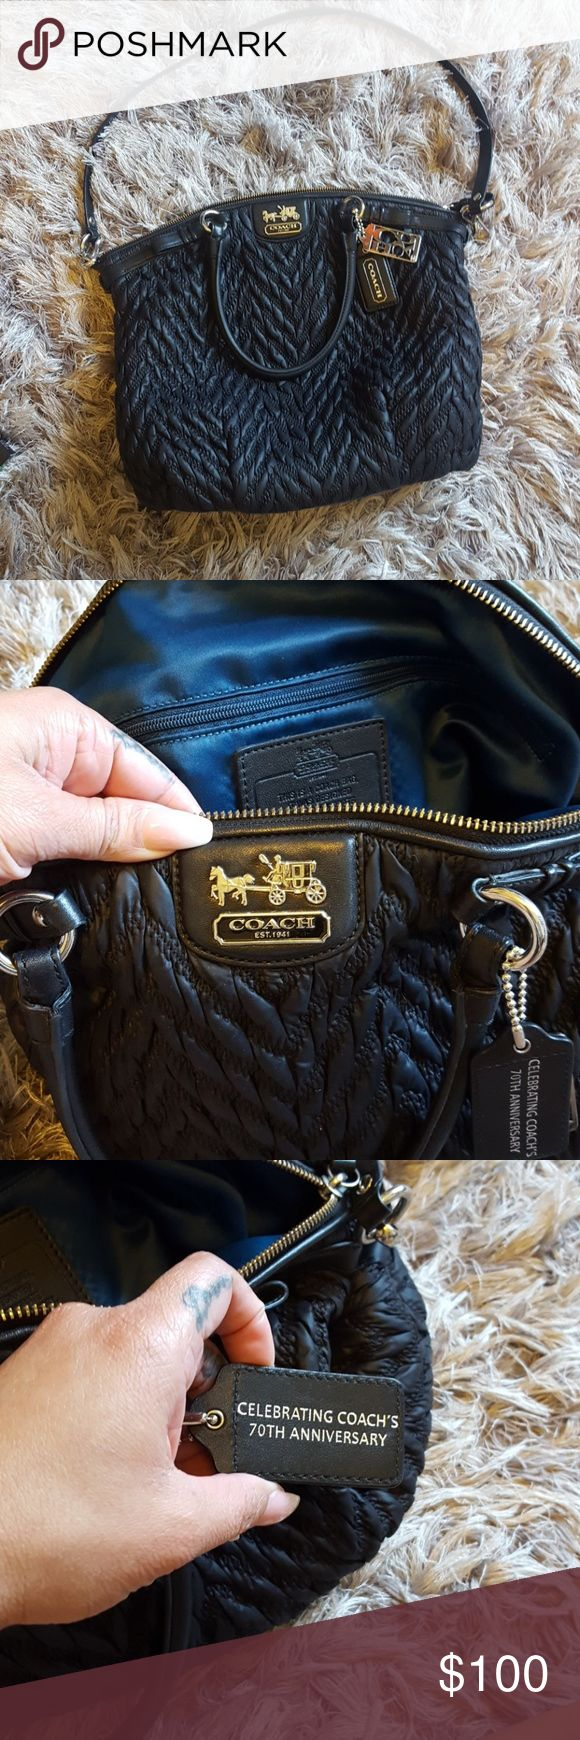 Black Coach purse Gently used Coach Bags